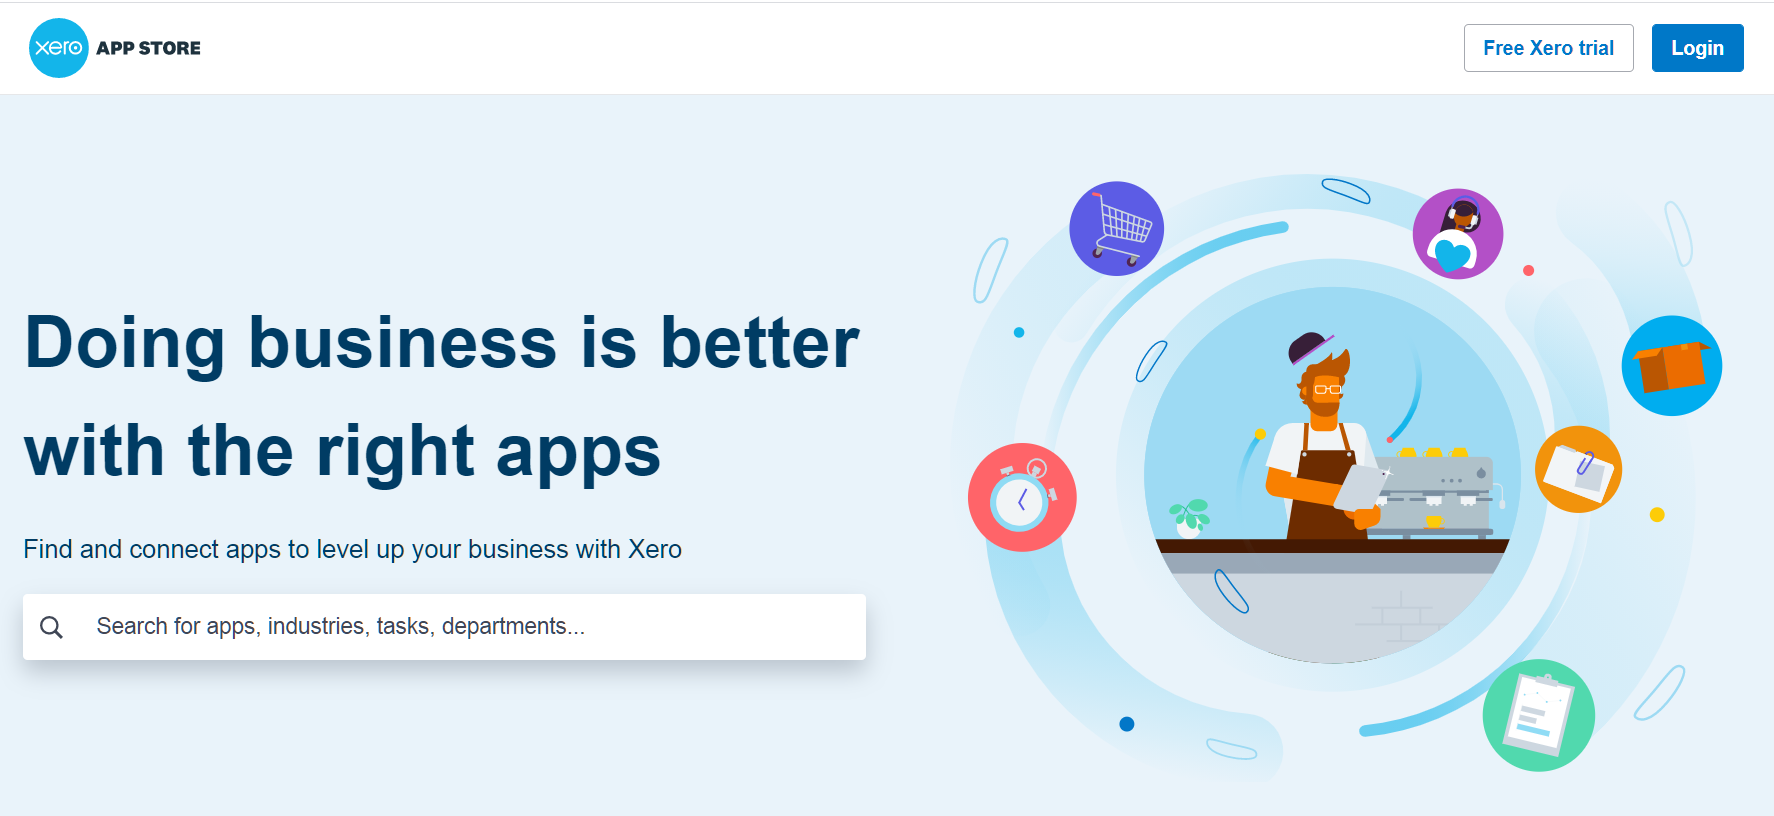 Xero Marketplace for integrated apps - Beginners to Advanced Certificate short online training courses in Xero - EzyLearn